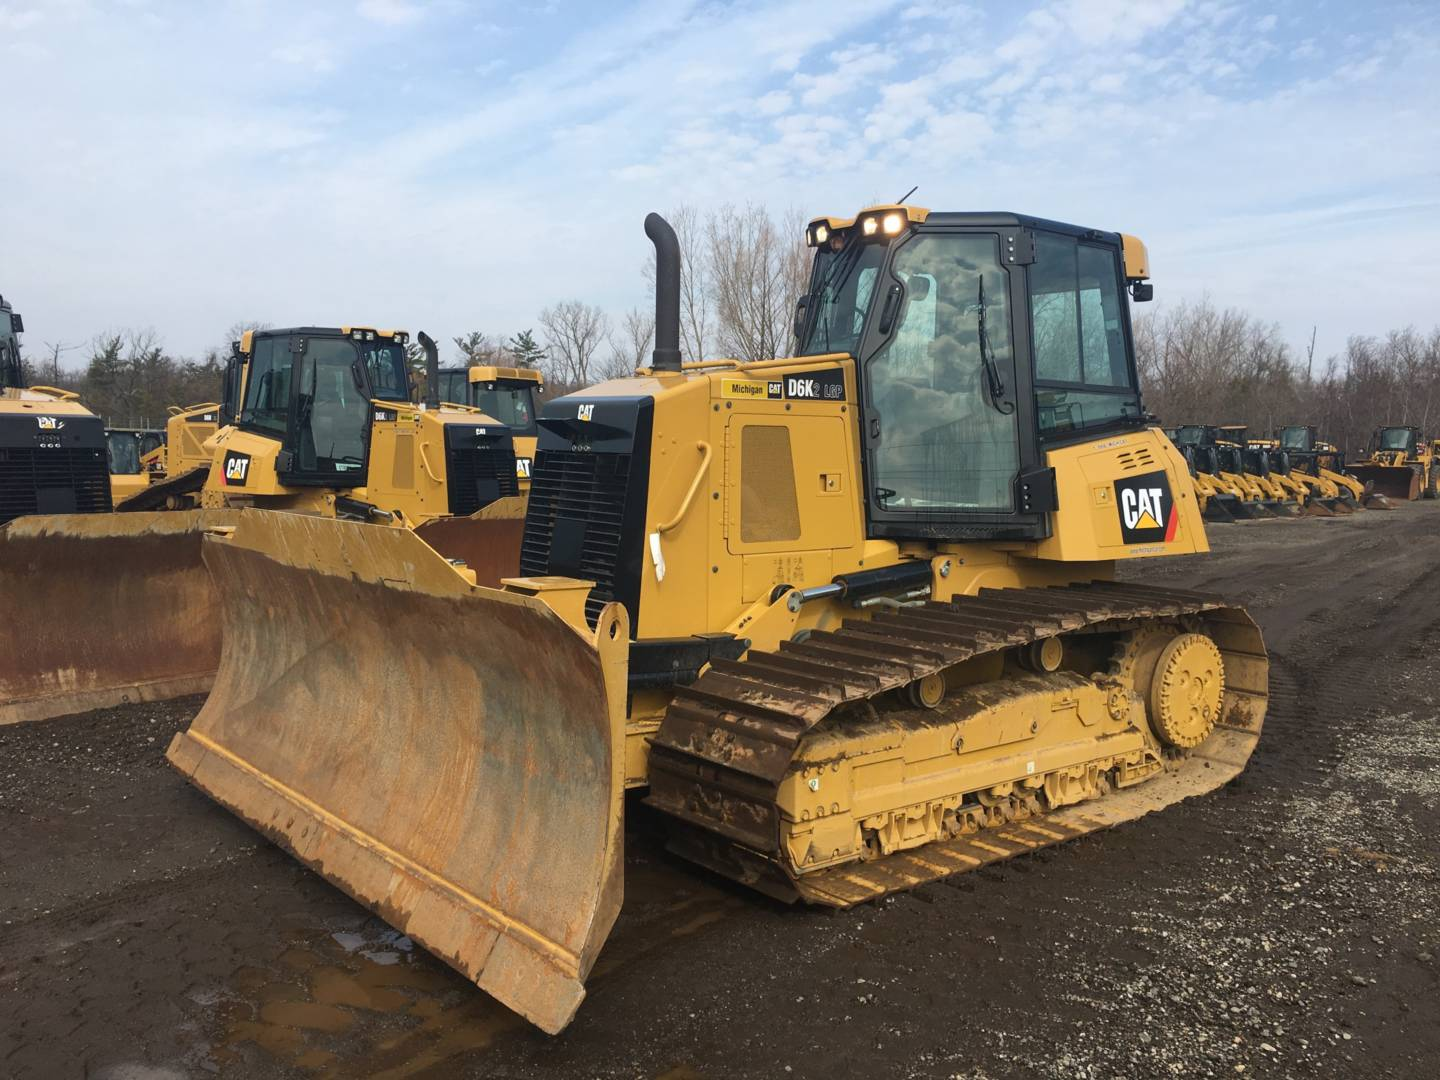 Used Cat Service Trucks For Sale